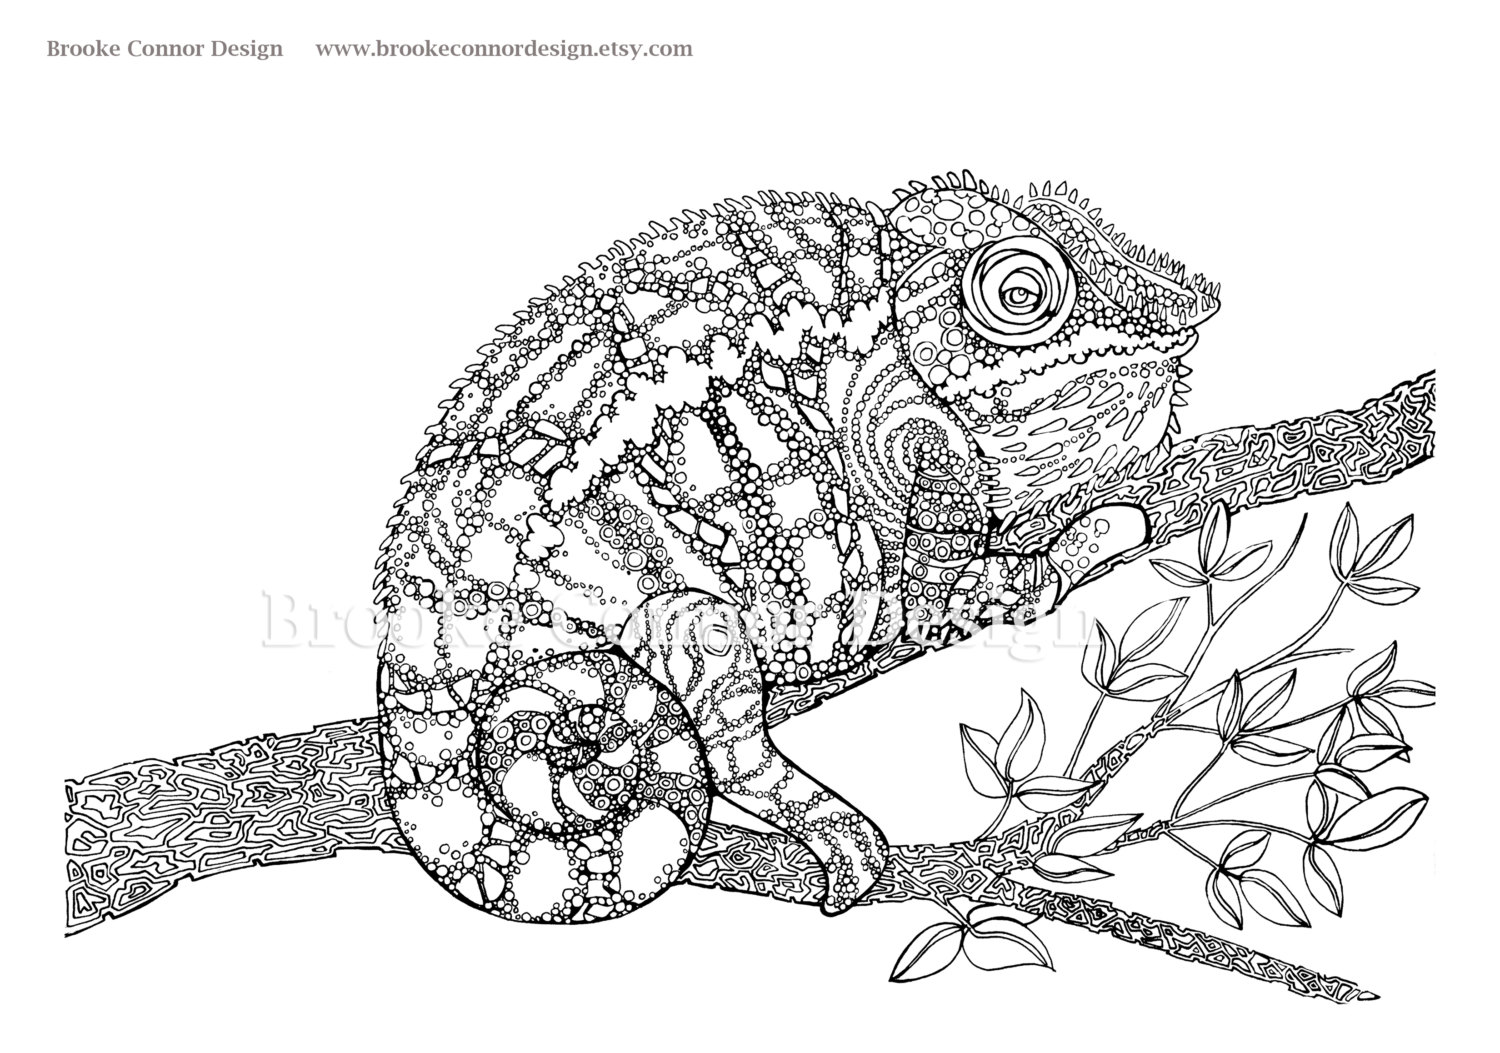 Very Detailed Coloring Pages On Images Free Download For: Jackson's Chameleon Coloring, Download Jackson's Chameleon